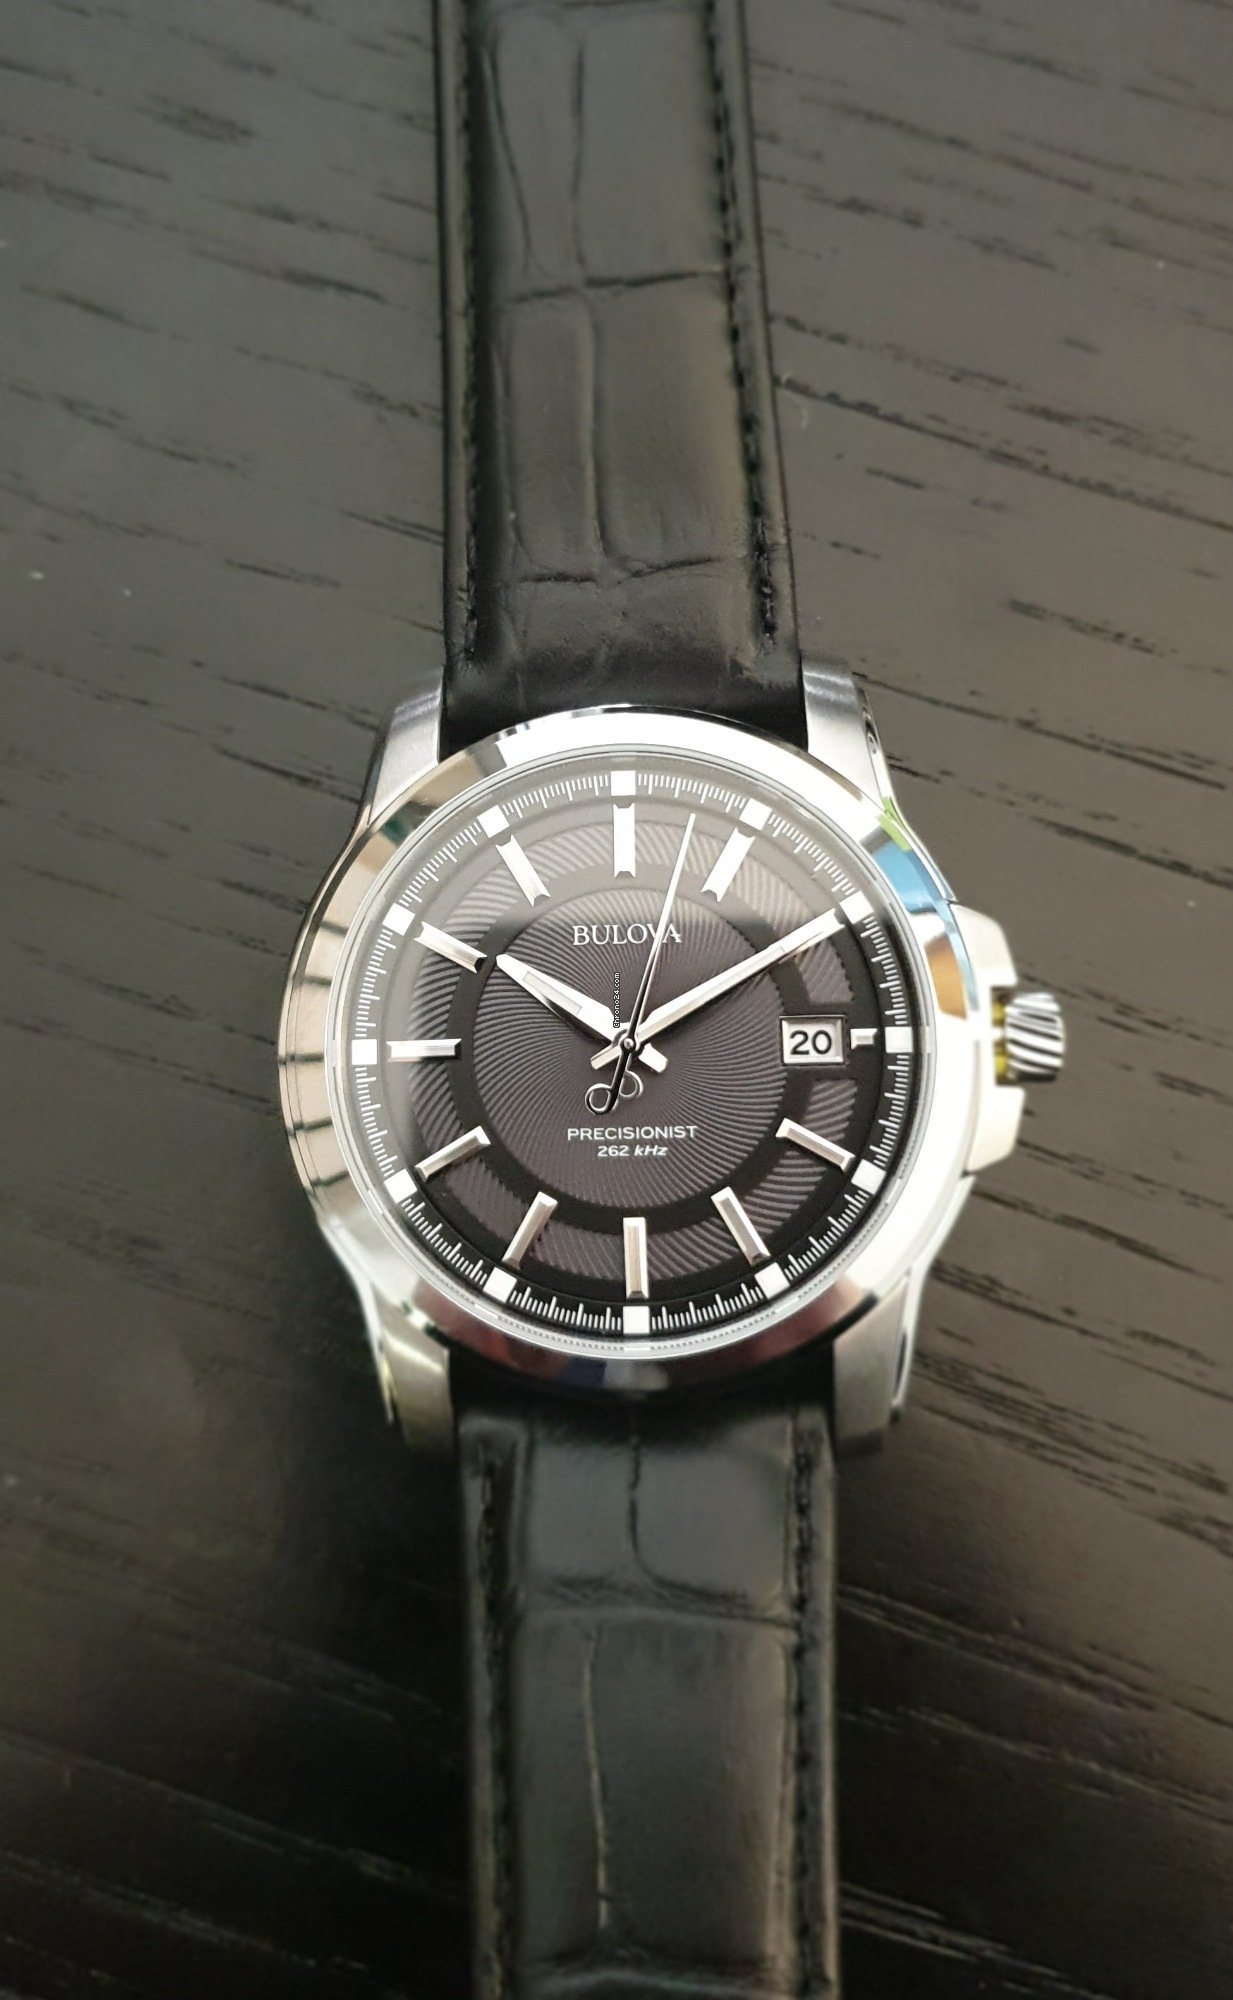 2cf7b4826 Bulova Precisionist for $227 for sale from a Trusted Seller on Chrono24